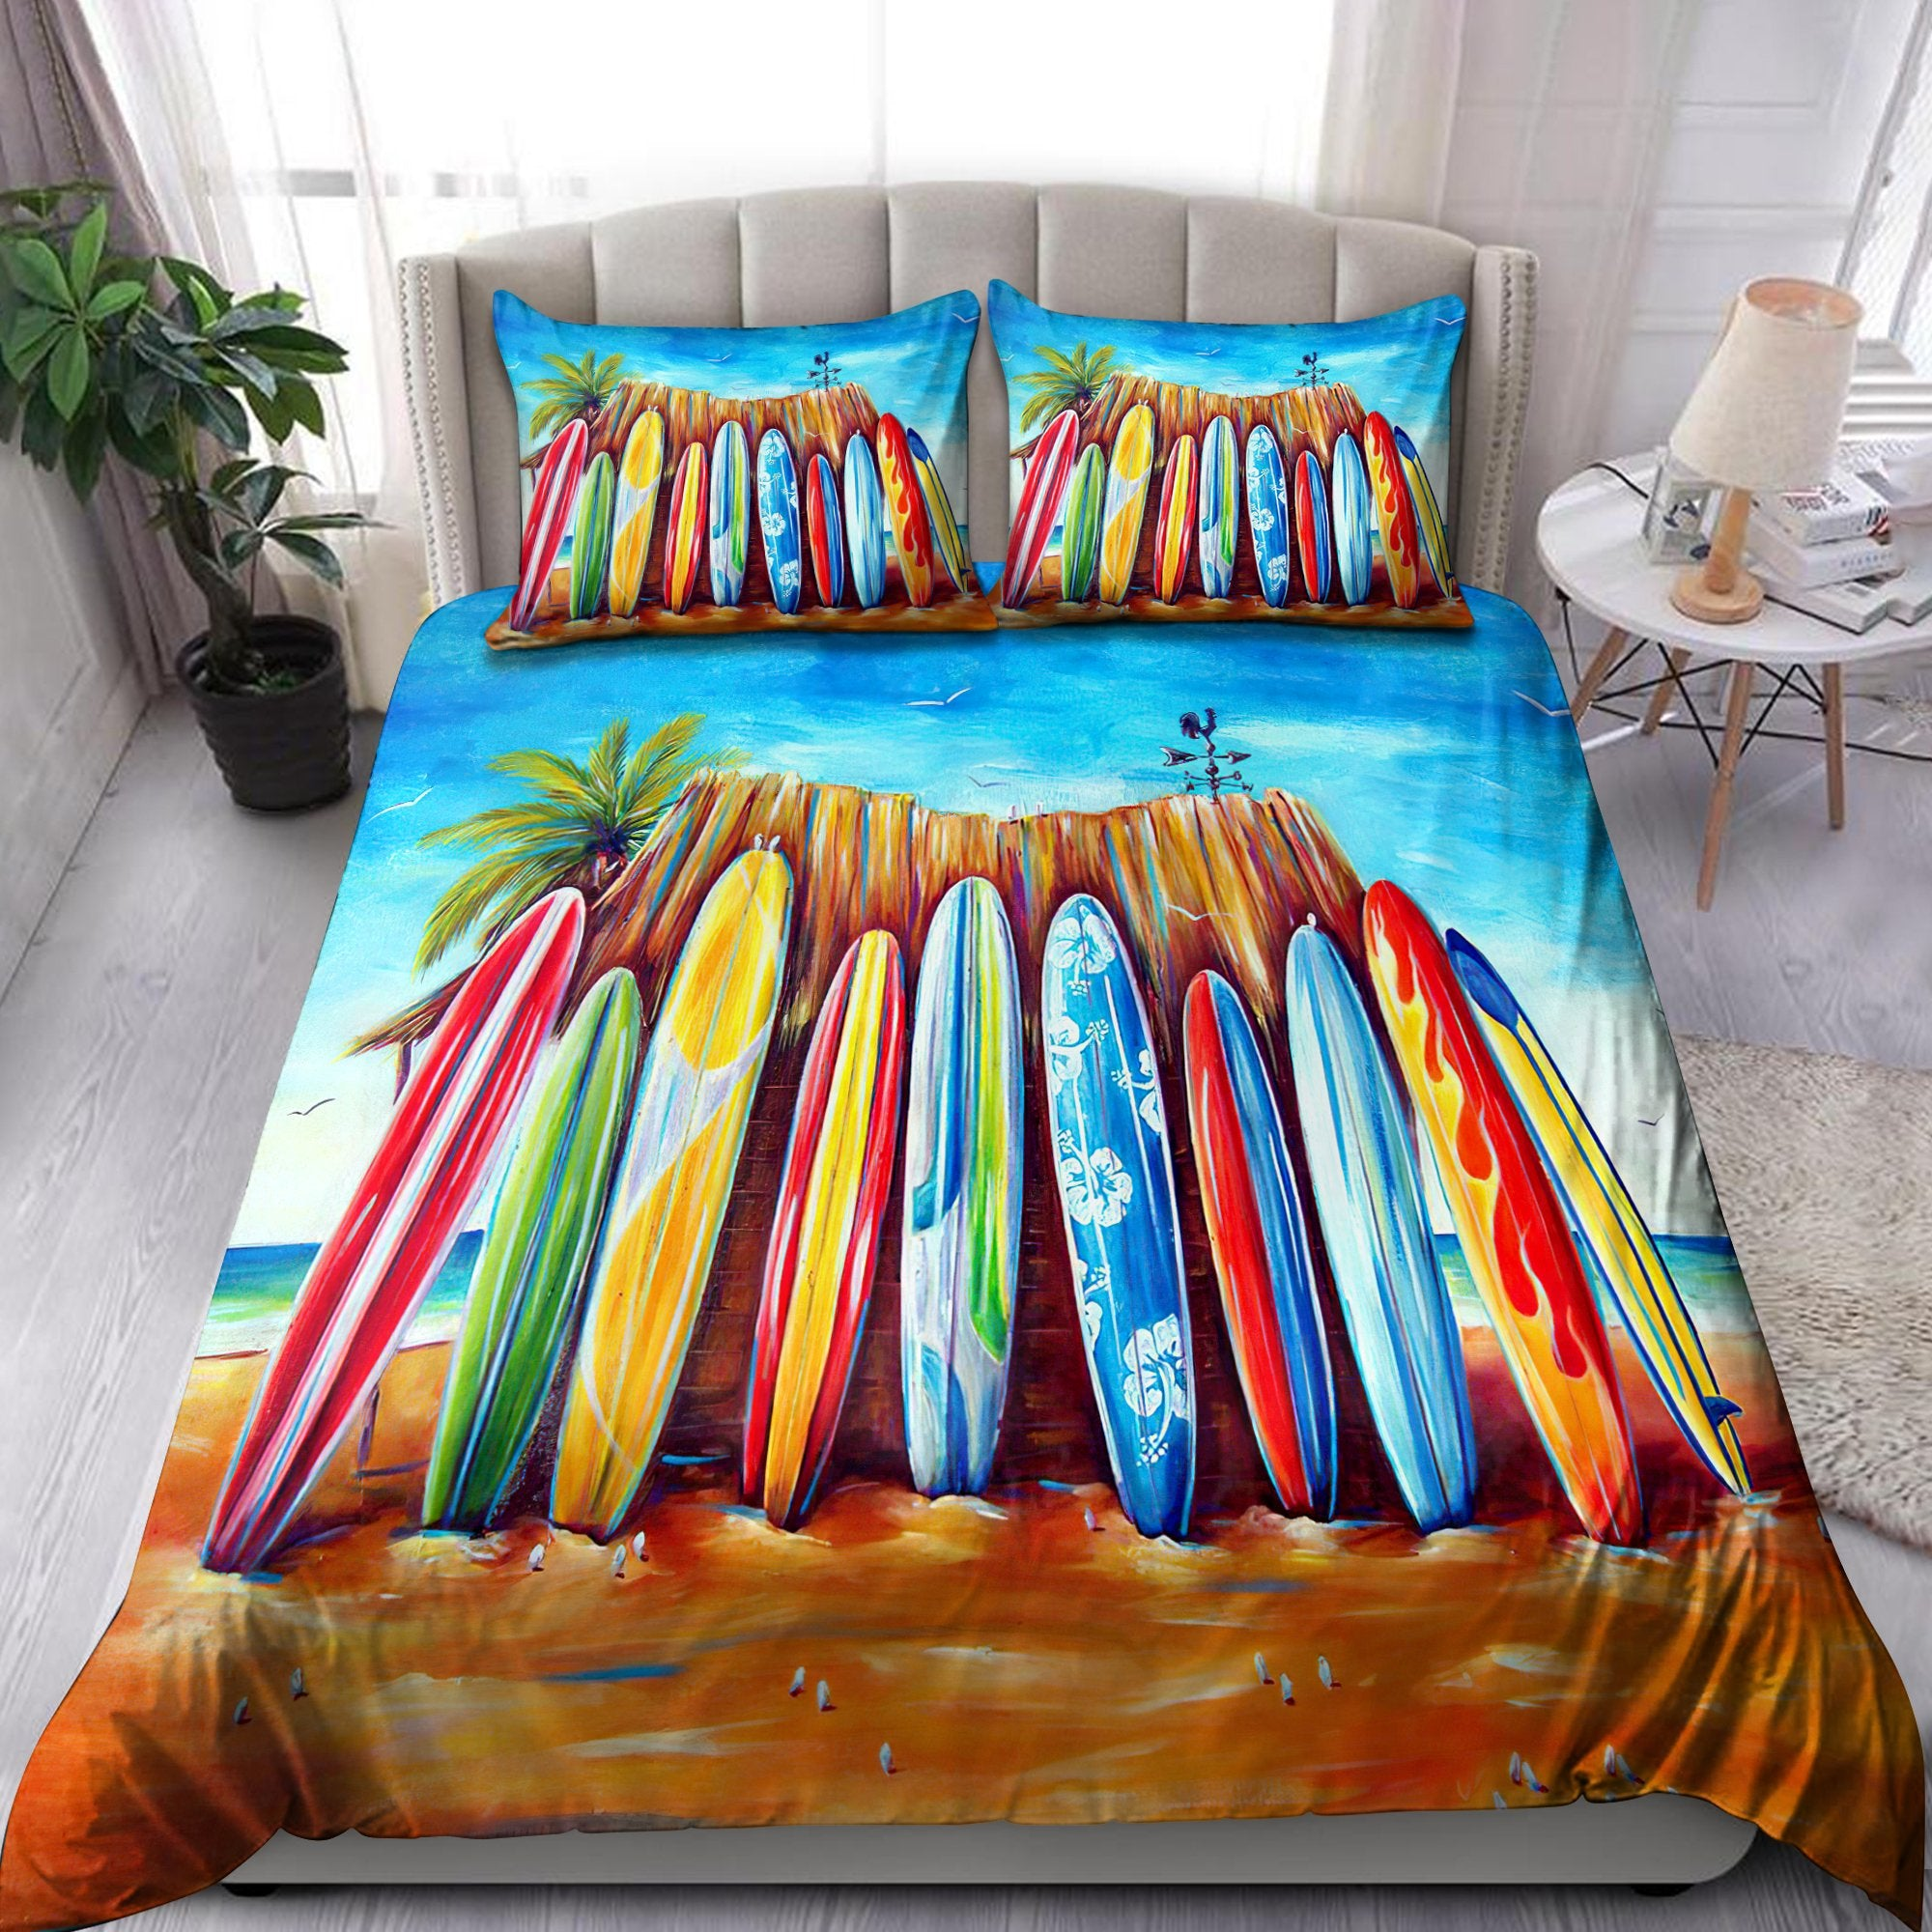 Surfboard and Beach Bedding Set Pi01082004